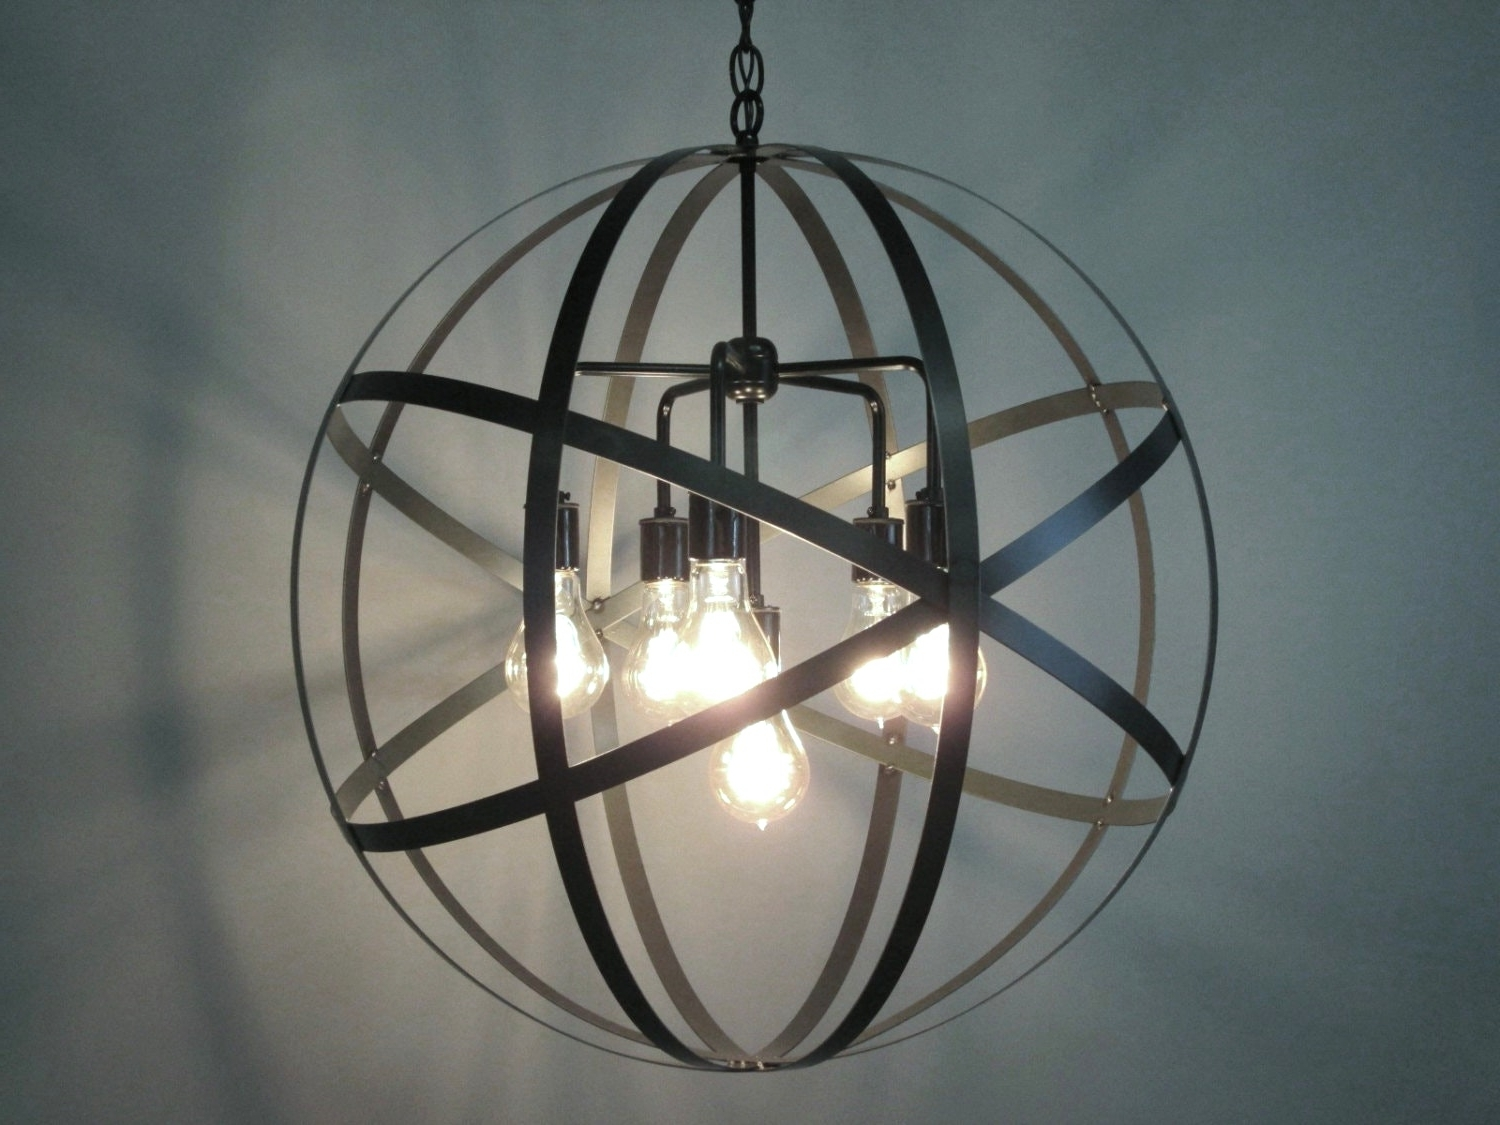 Industrial Orb Chandelier Ceiling Light Sphere 24 With Clear Glass in Fashionable Orb Chandelier